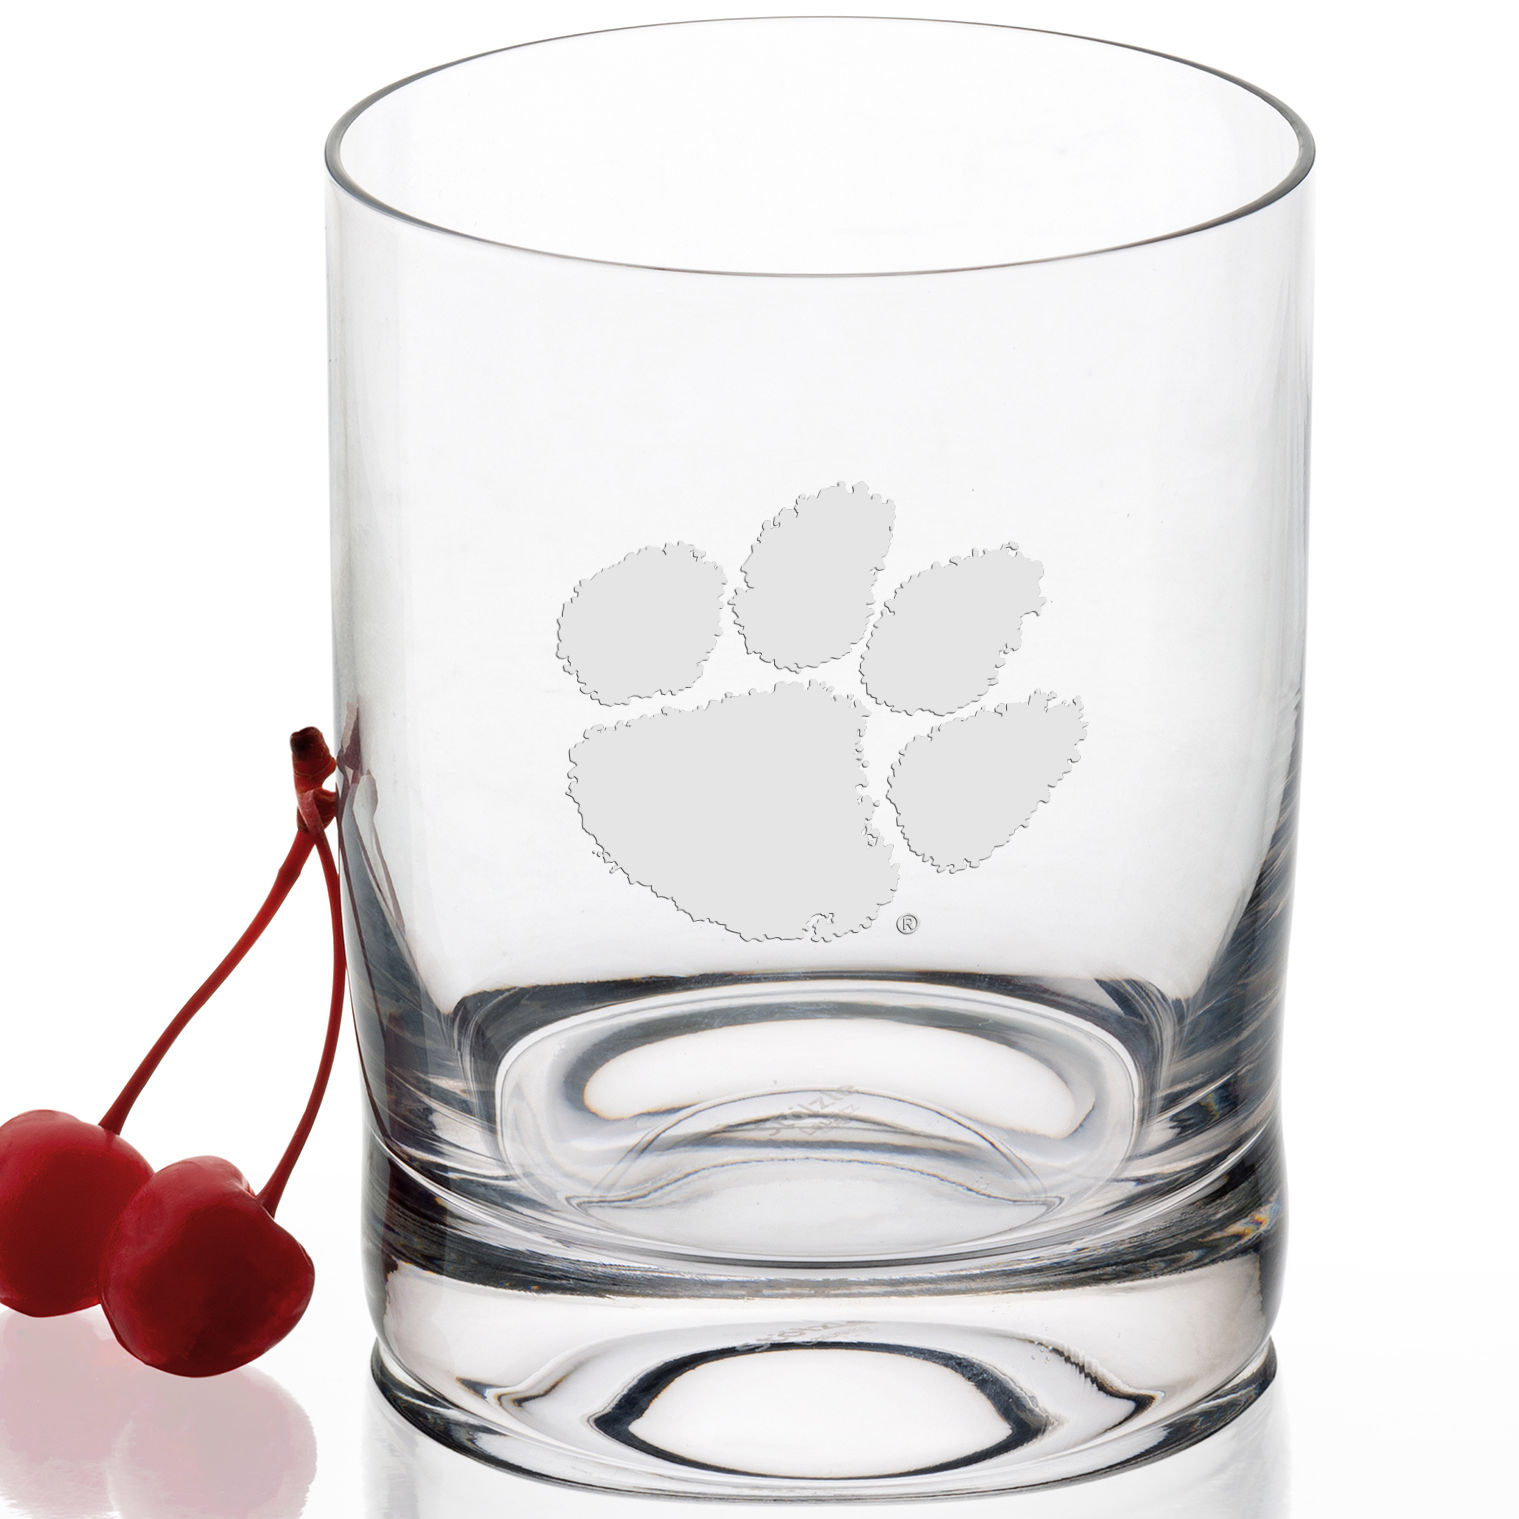 Clemson Tumbler Glasses - Set of 2 - Image 2